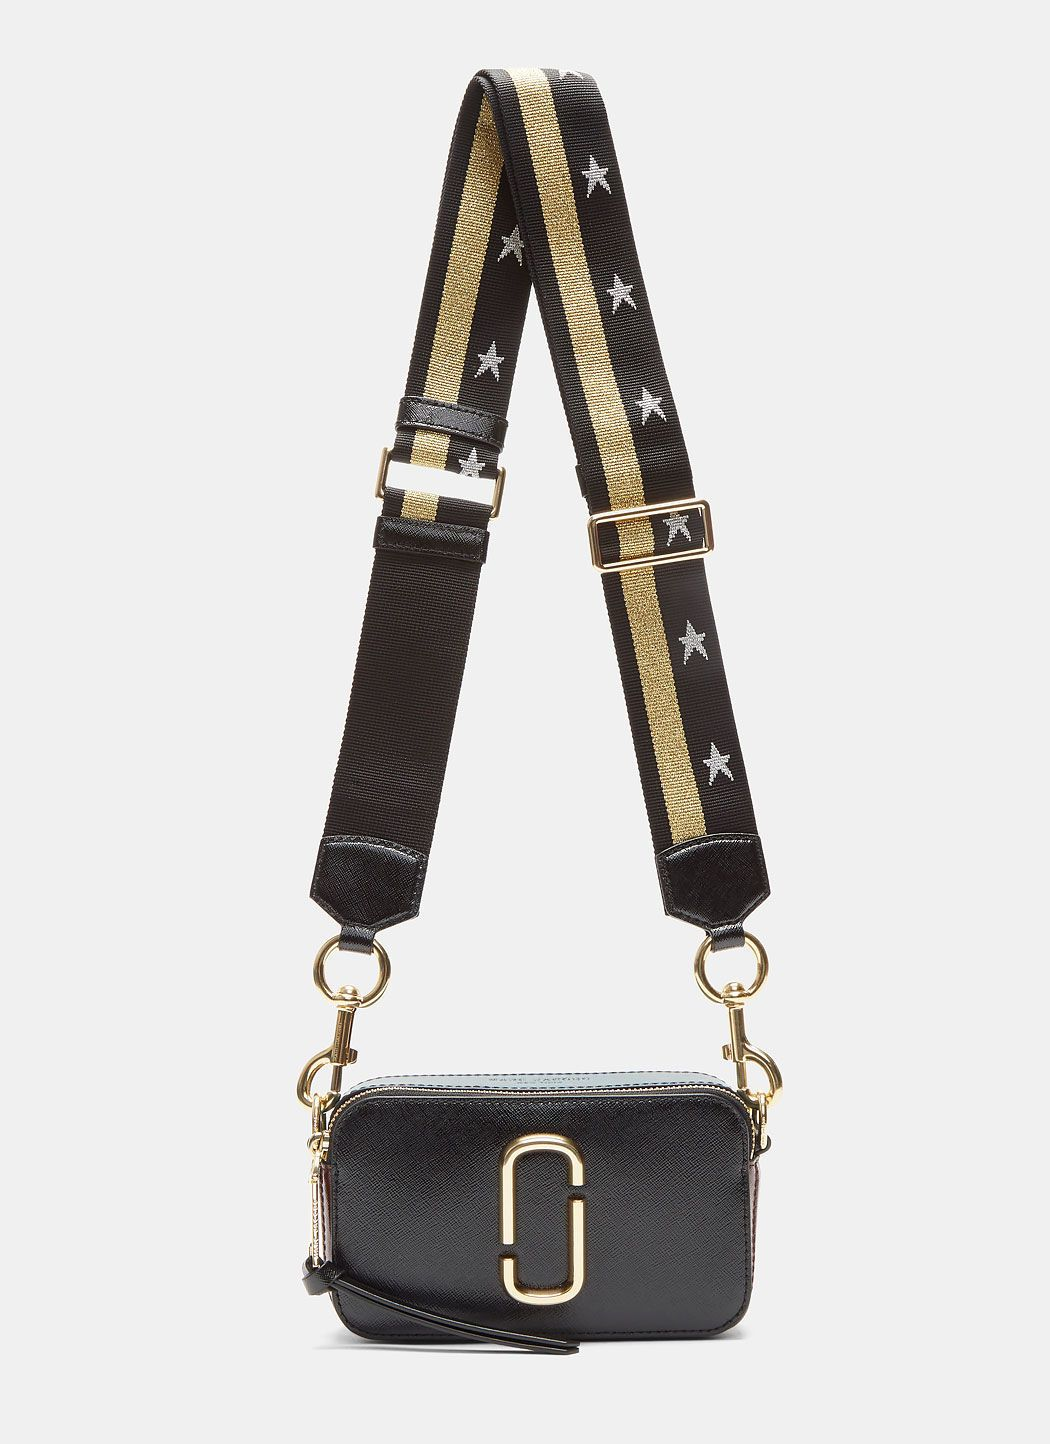 dc28d9e6285 MARC JACOBS Women S Snapshot Star Strapped Crossbody Camera Bag In Black.   marcjacobs  bags  shoulder bags  leather  crossbody  metallic